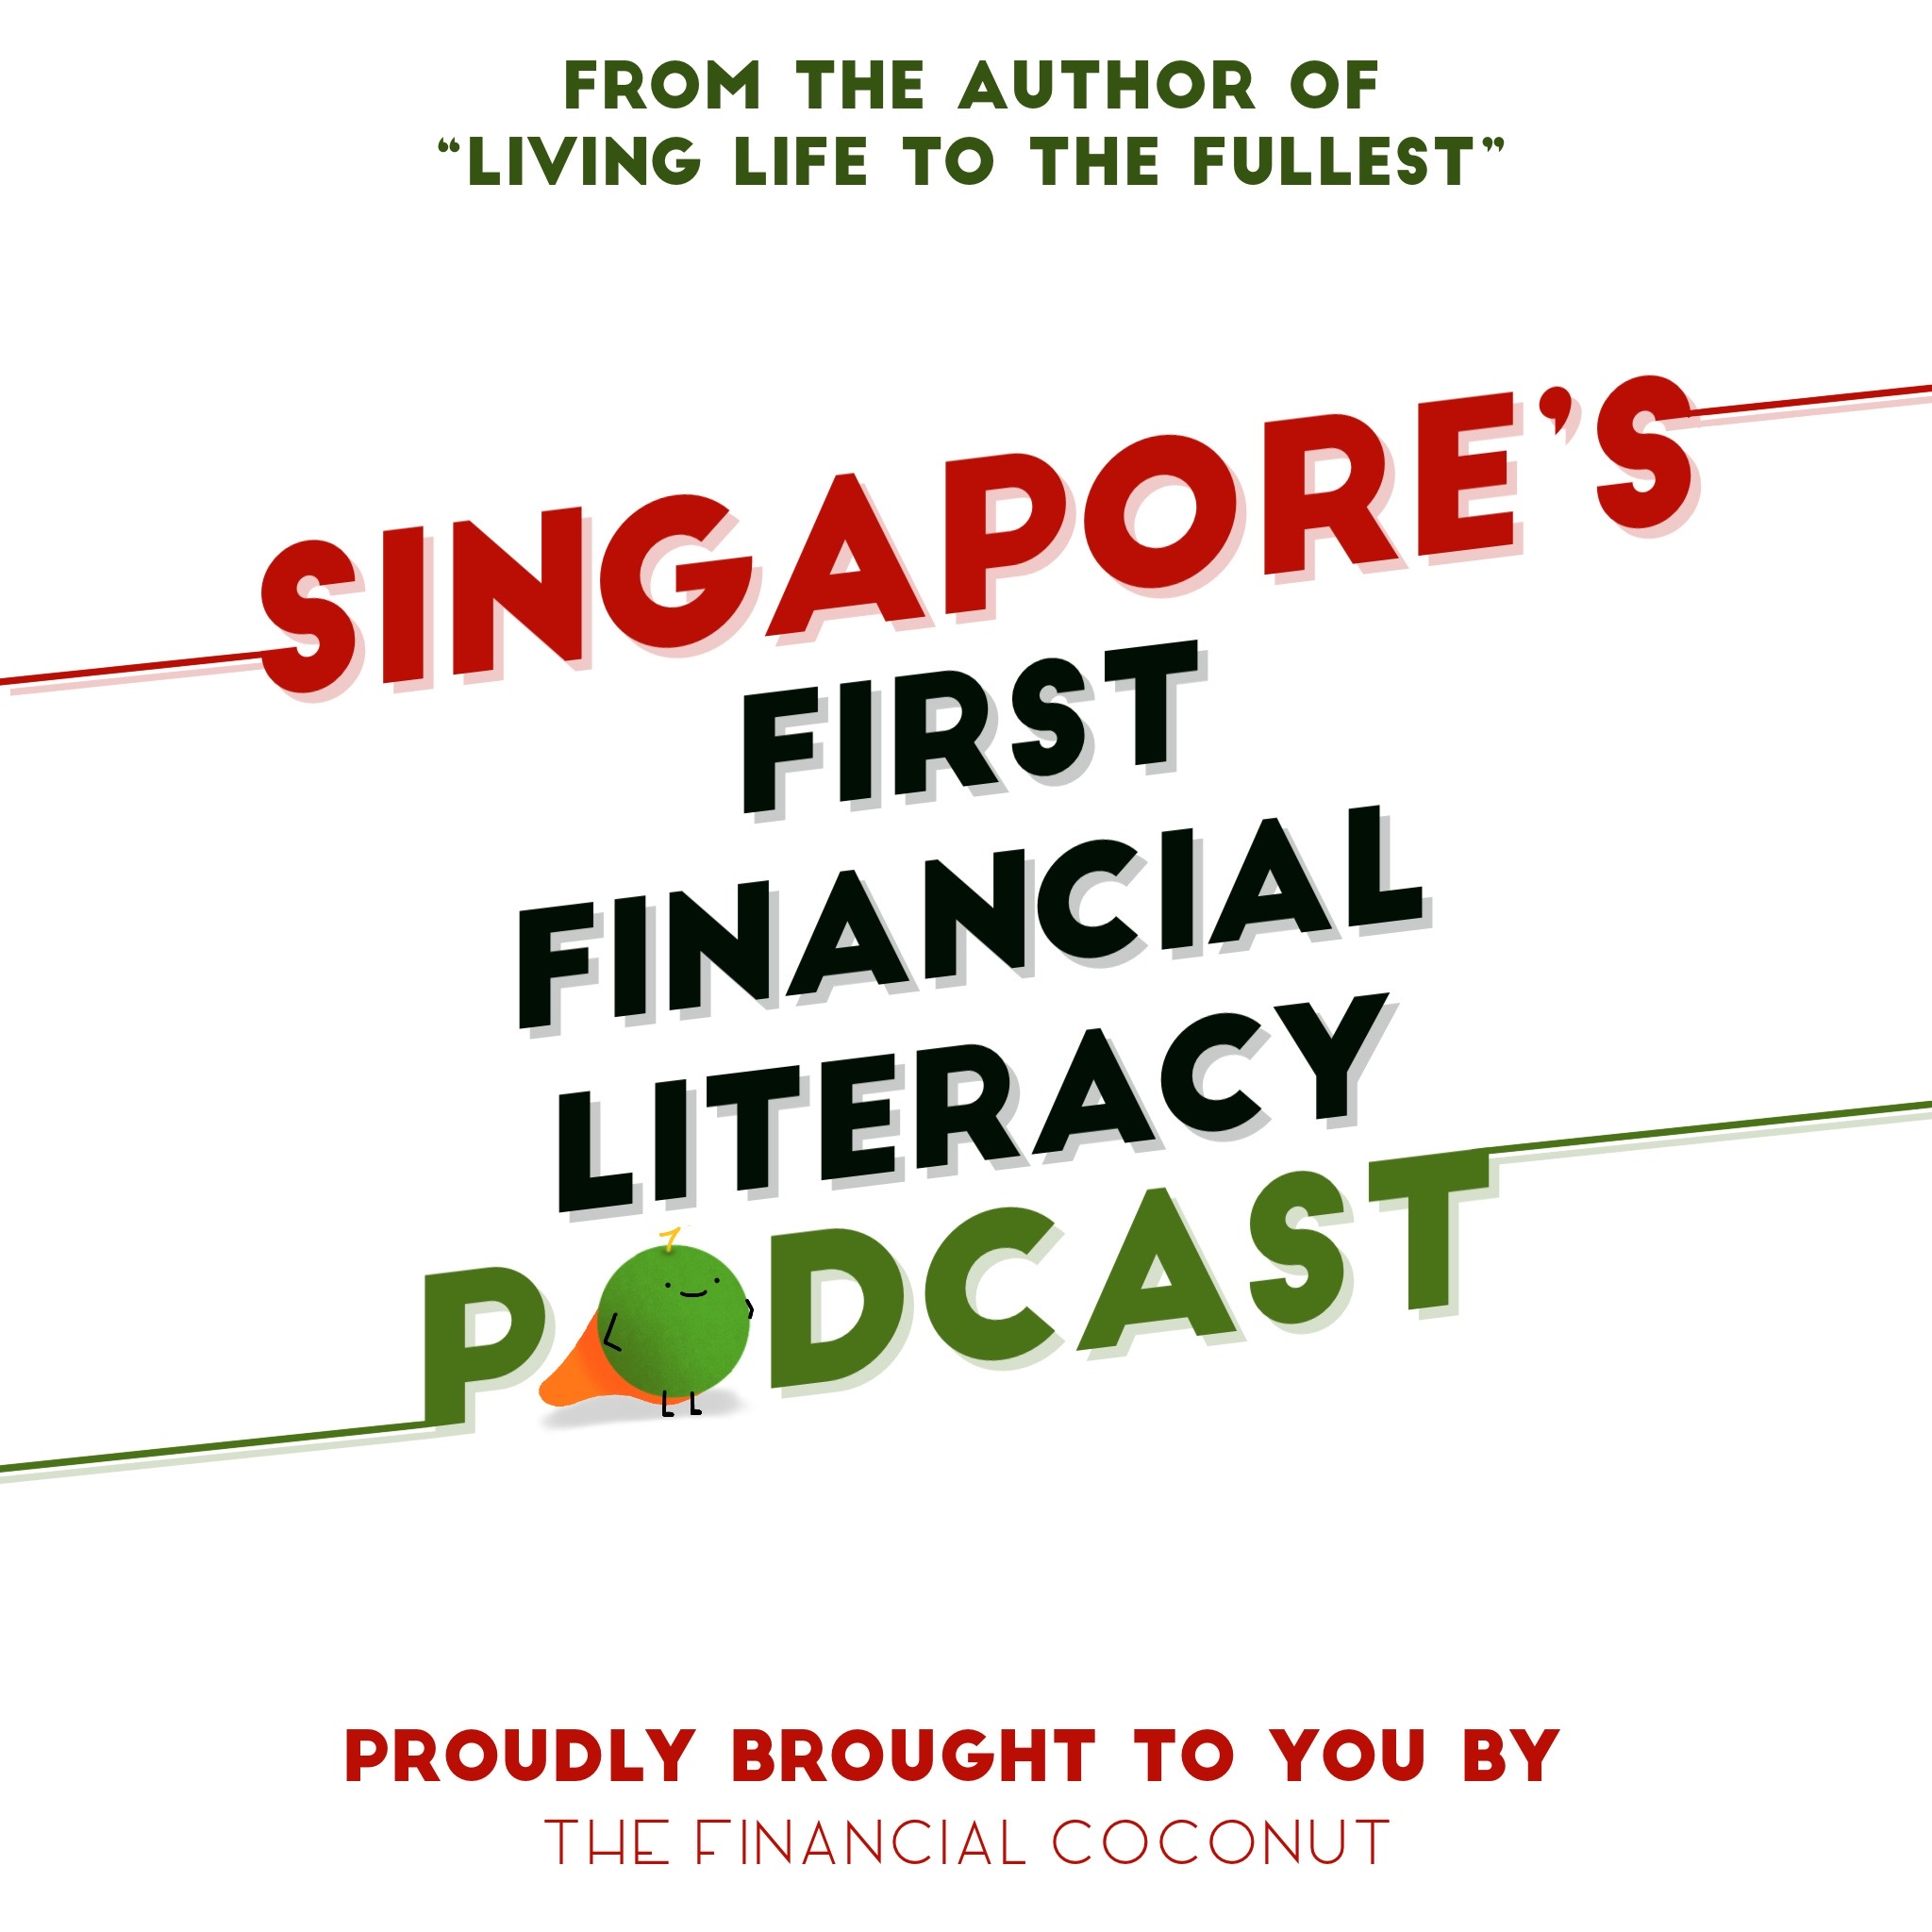 Singapore's first financial literacy podcast. The Financial Coconut